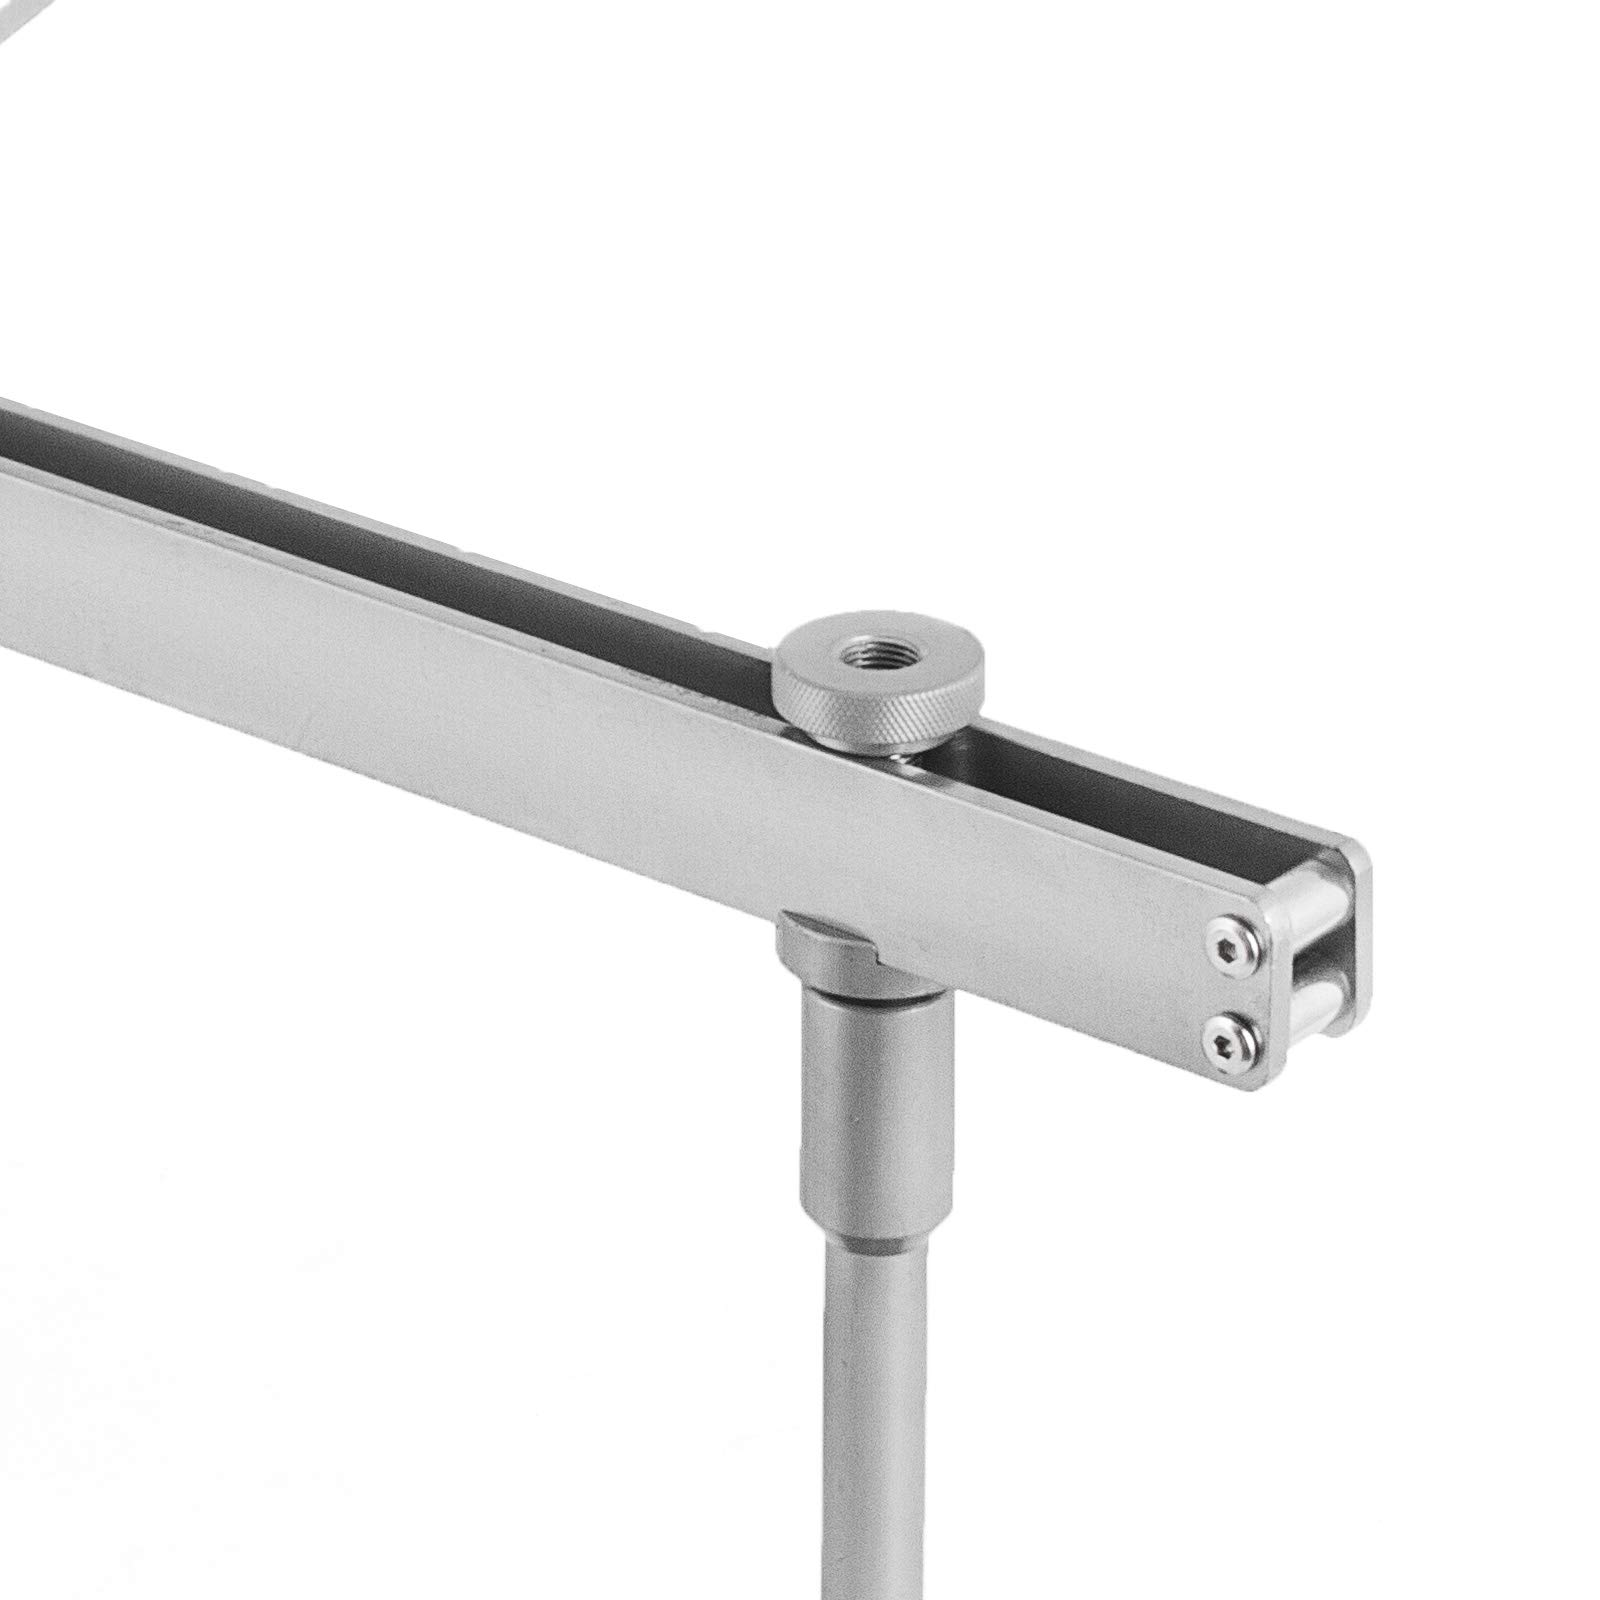 Bestauto Dent Pull Lever Bar Kit750MM Fit for Both Aluminum and Steel Dent Pulling by Bestauto (Image #9)